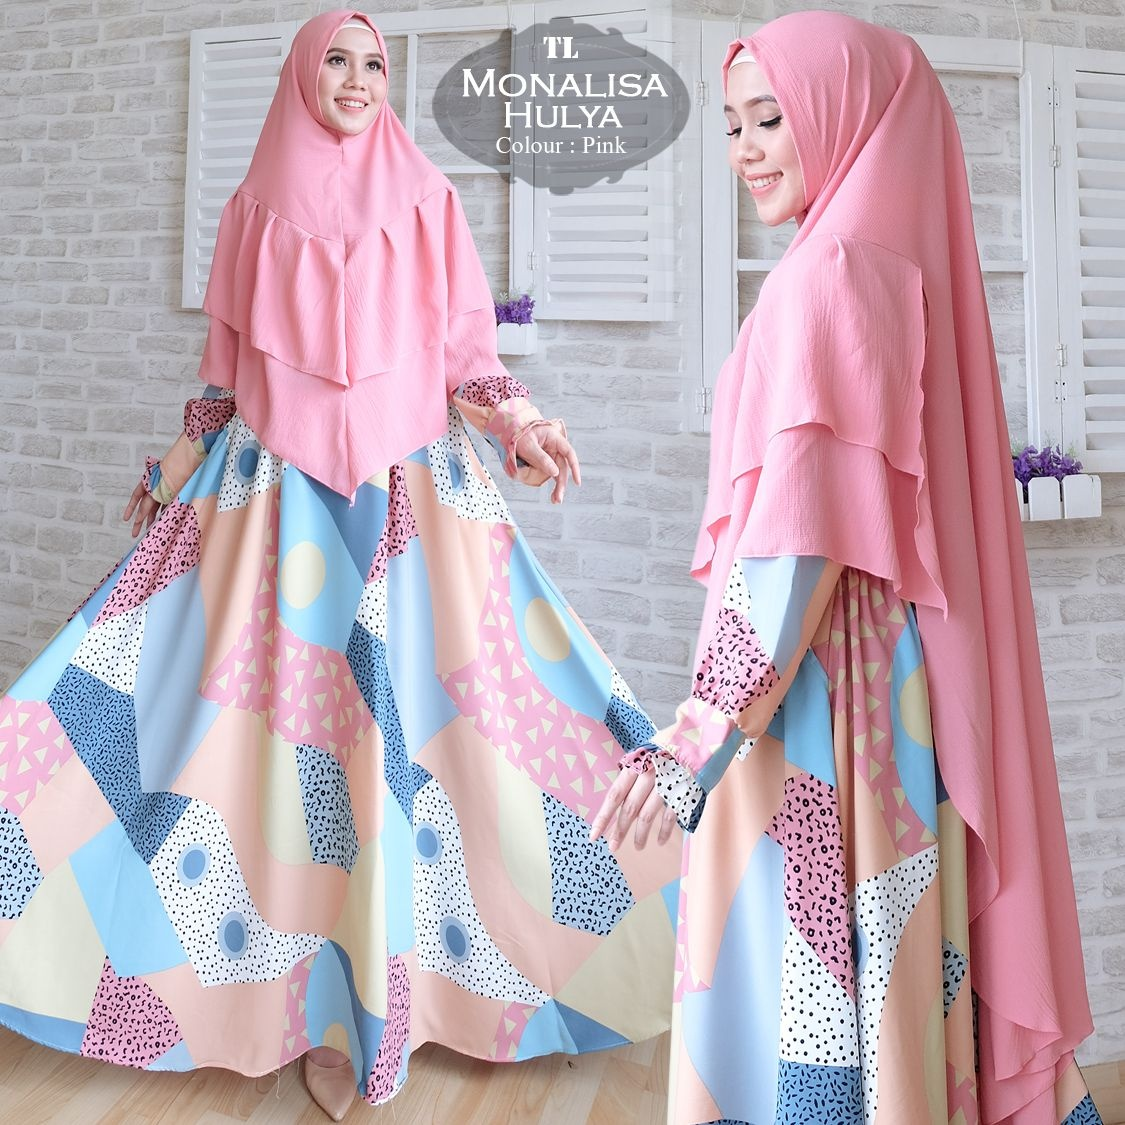 Image Result For Model Gamis Quail Hijab